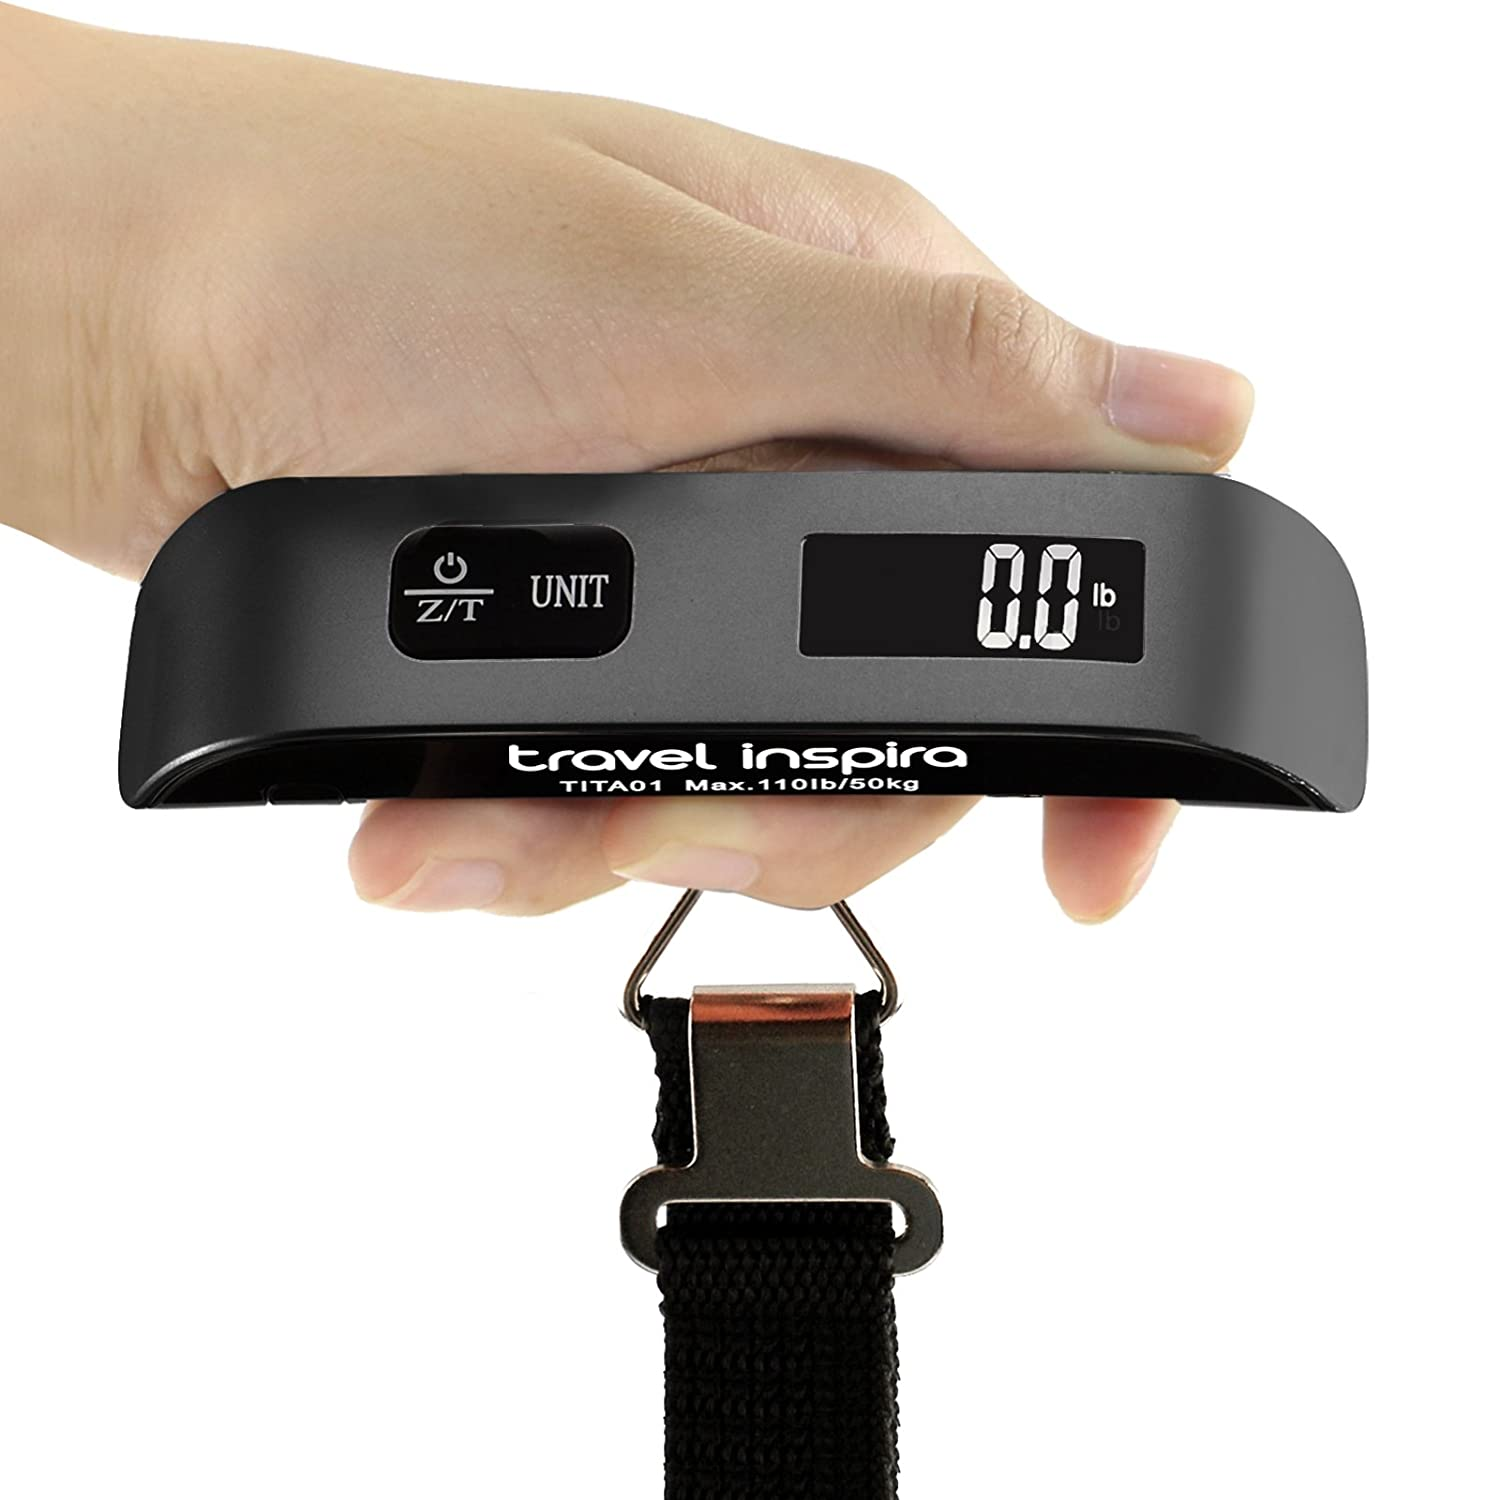 This is an image of a digital luggage scale with a hand holding it.